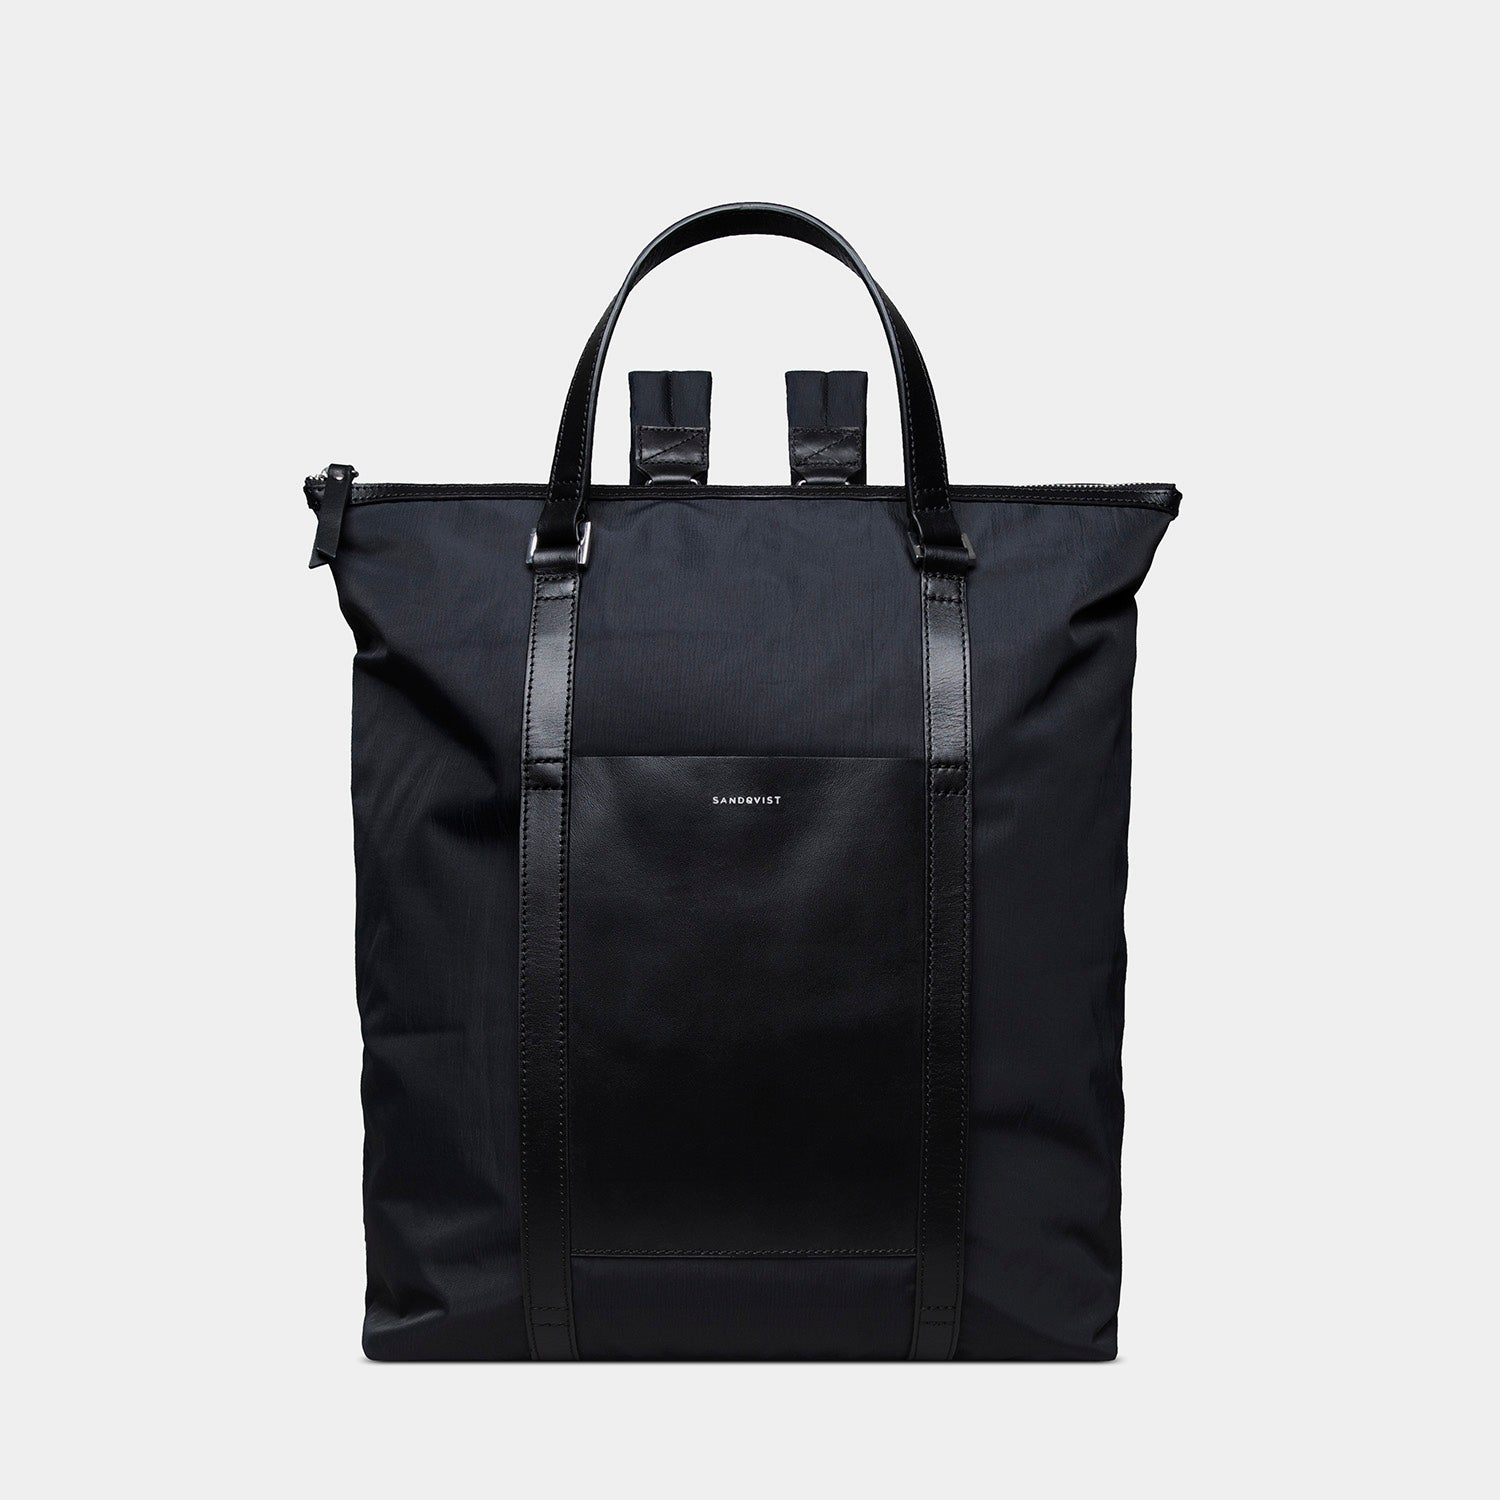 Sandqvist Marta Backpack - Black